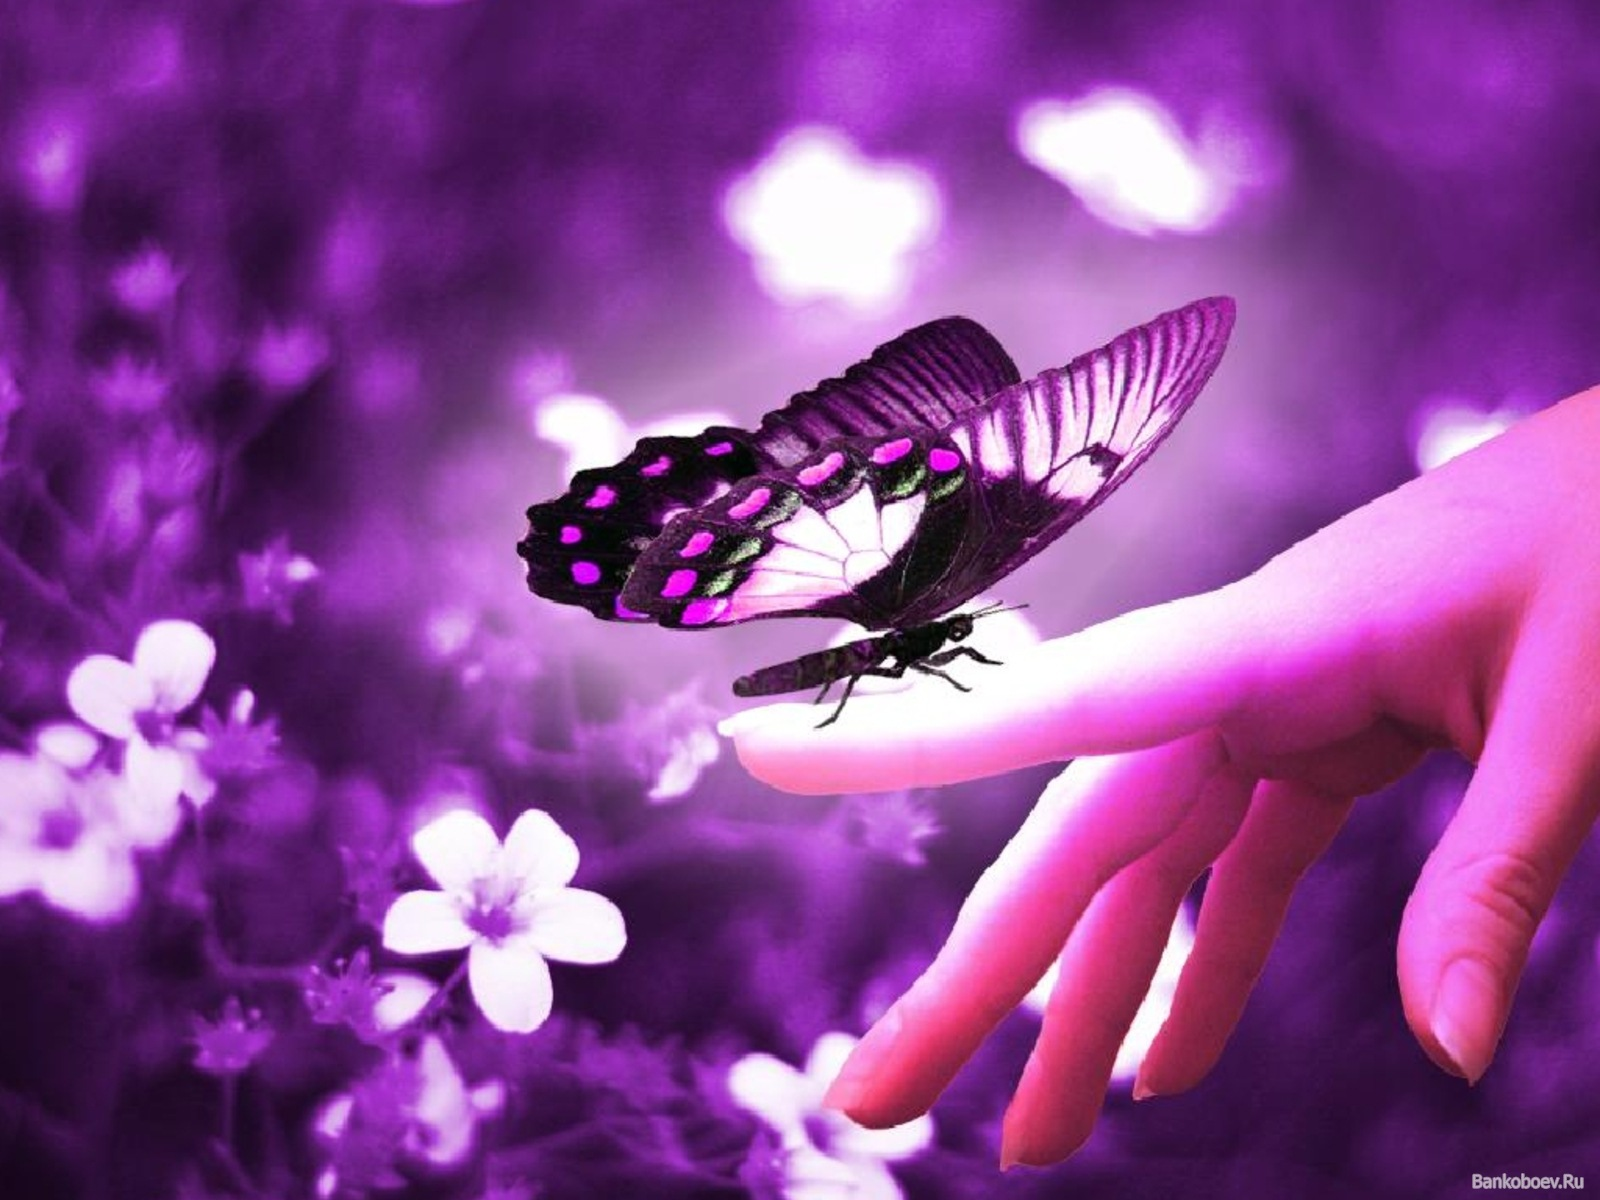 Free Download Butterfly In Purple Computer Screen Saver Pc Desktop Wallpaper 1600x1200 For Your Desktop Mobile Tablet Explore 45 Purple Wallpapers For Laptop Free Wallpaper For Laptop Cute Wallpapers Please contact us if you want to publish a butterfly laptop. purple wallpapers for laptop